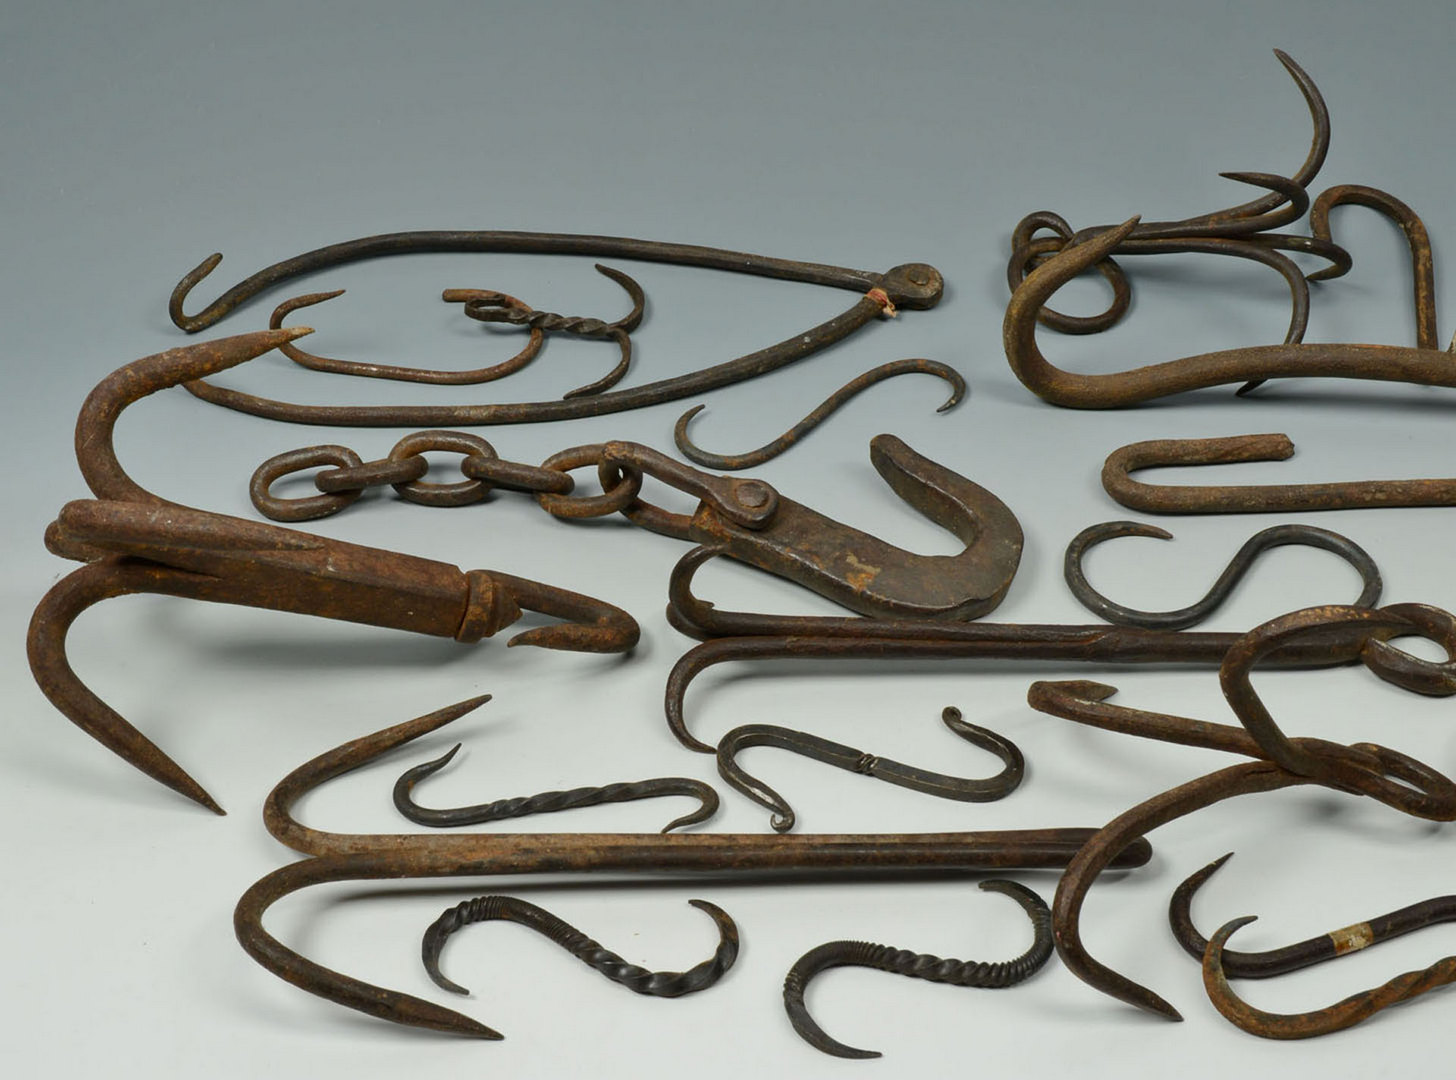 Lot 586: Grouping of Early Iron, Mostly Hearth Related